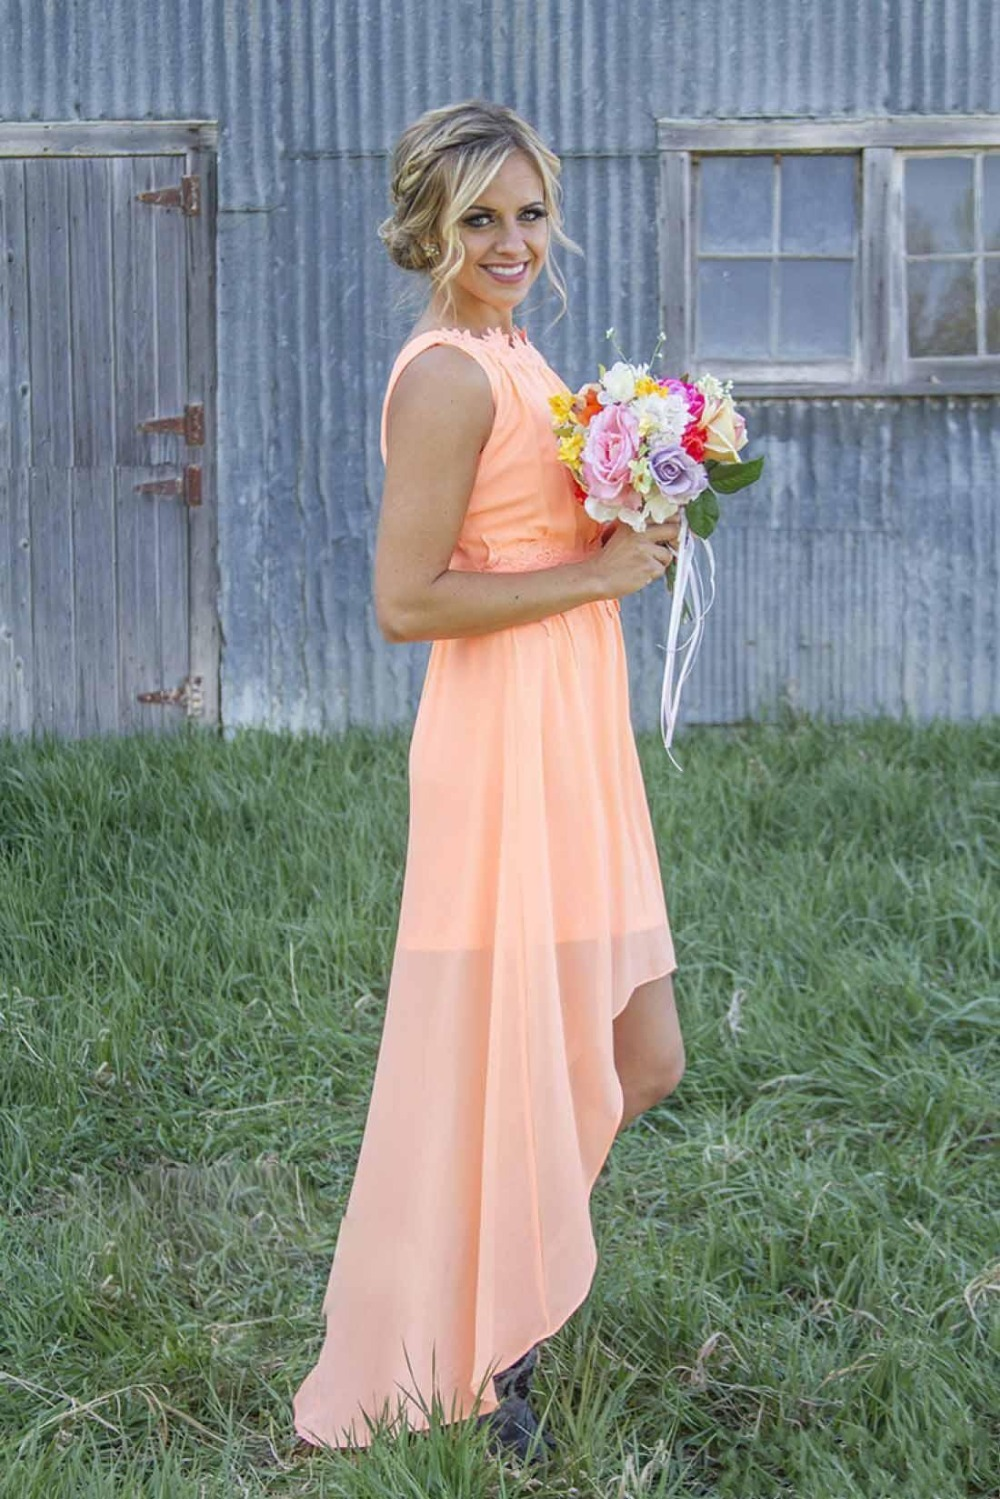 2016 mint orange country cheap bridesmaid dresses for wedding 2016 mint orange country cheap bridesmaid dresses for wedding under 100 hi lo chiffon junior beach short party dress in bridesmaid dresses from weddings ombrellifo Image collections